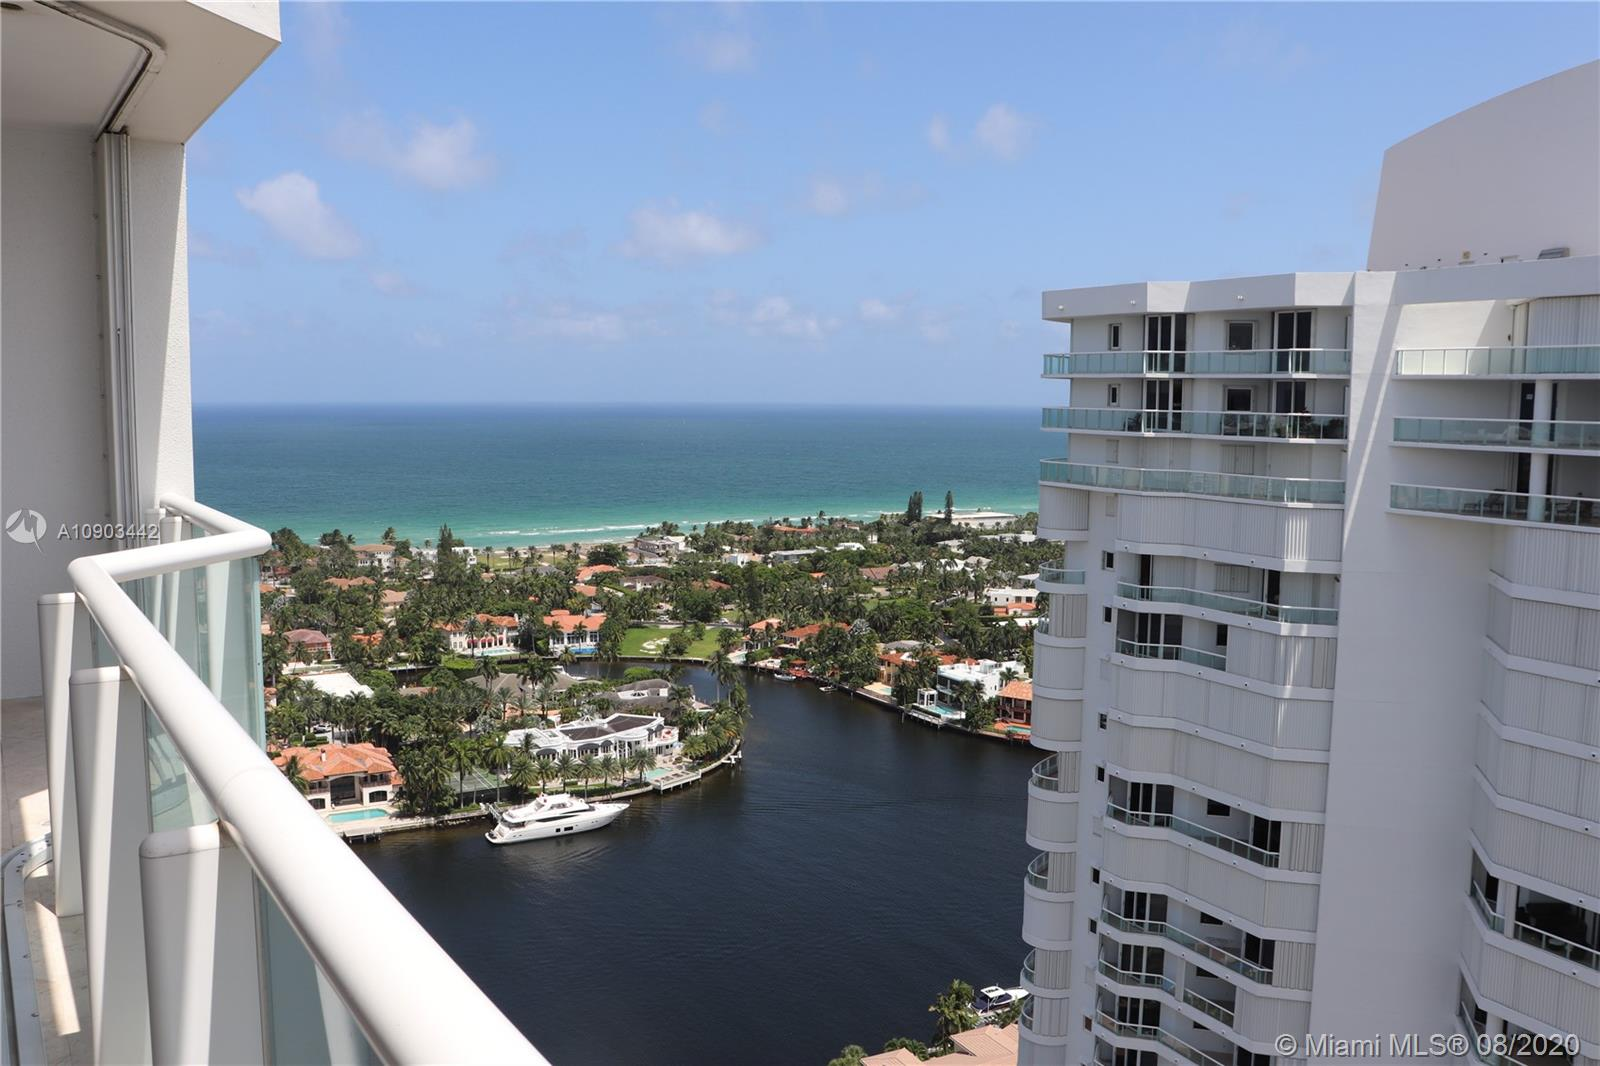 Atlantic 2 at the Point #3002 - 21150 Point Pl #3002, Aventura, FL 33180